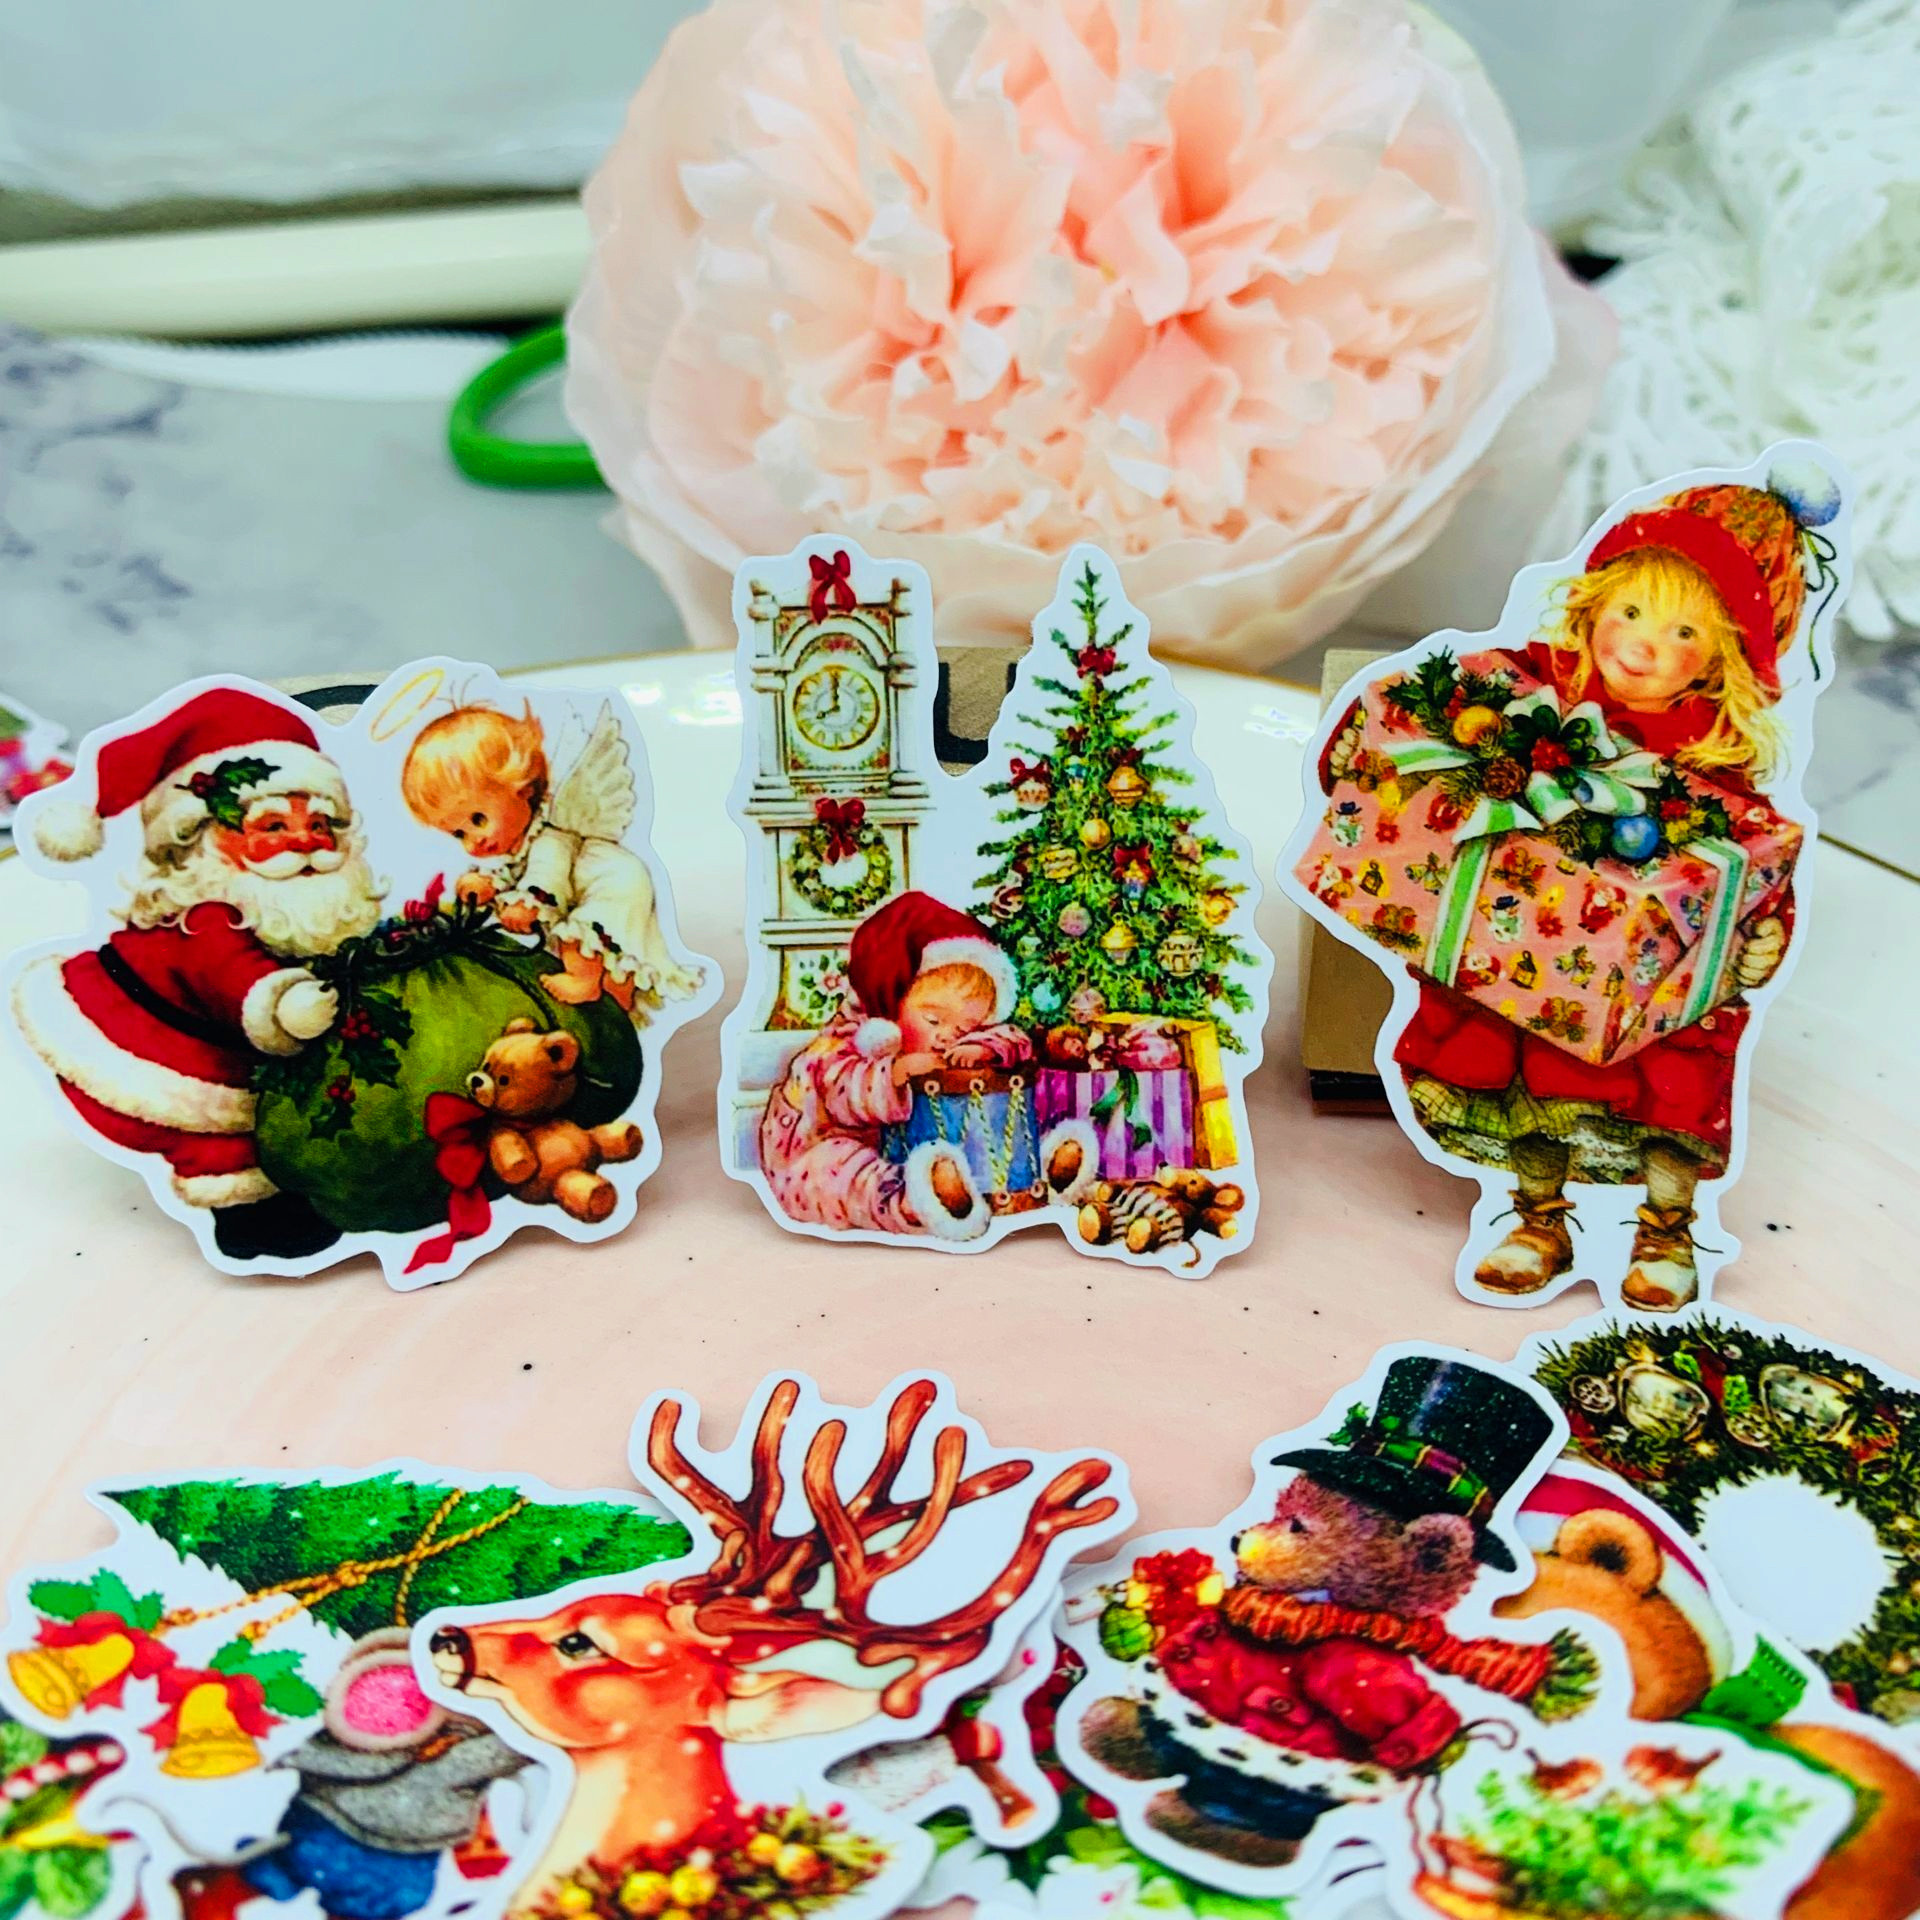 35Pcs/Pack Vintage Santa Clause Christmas Tree Sticker DIY Craft Scrapbooking Album Junk Journal Planner Decorative Stickers